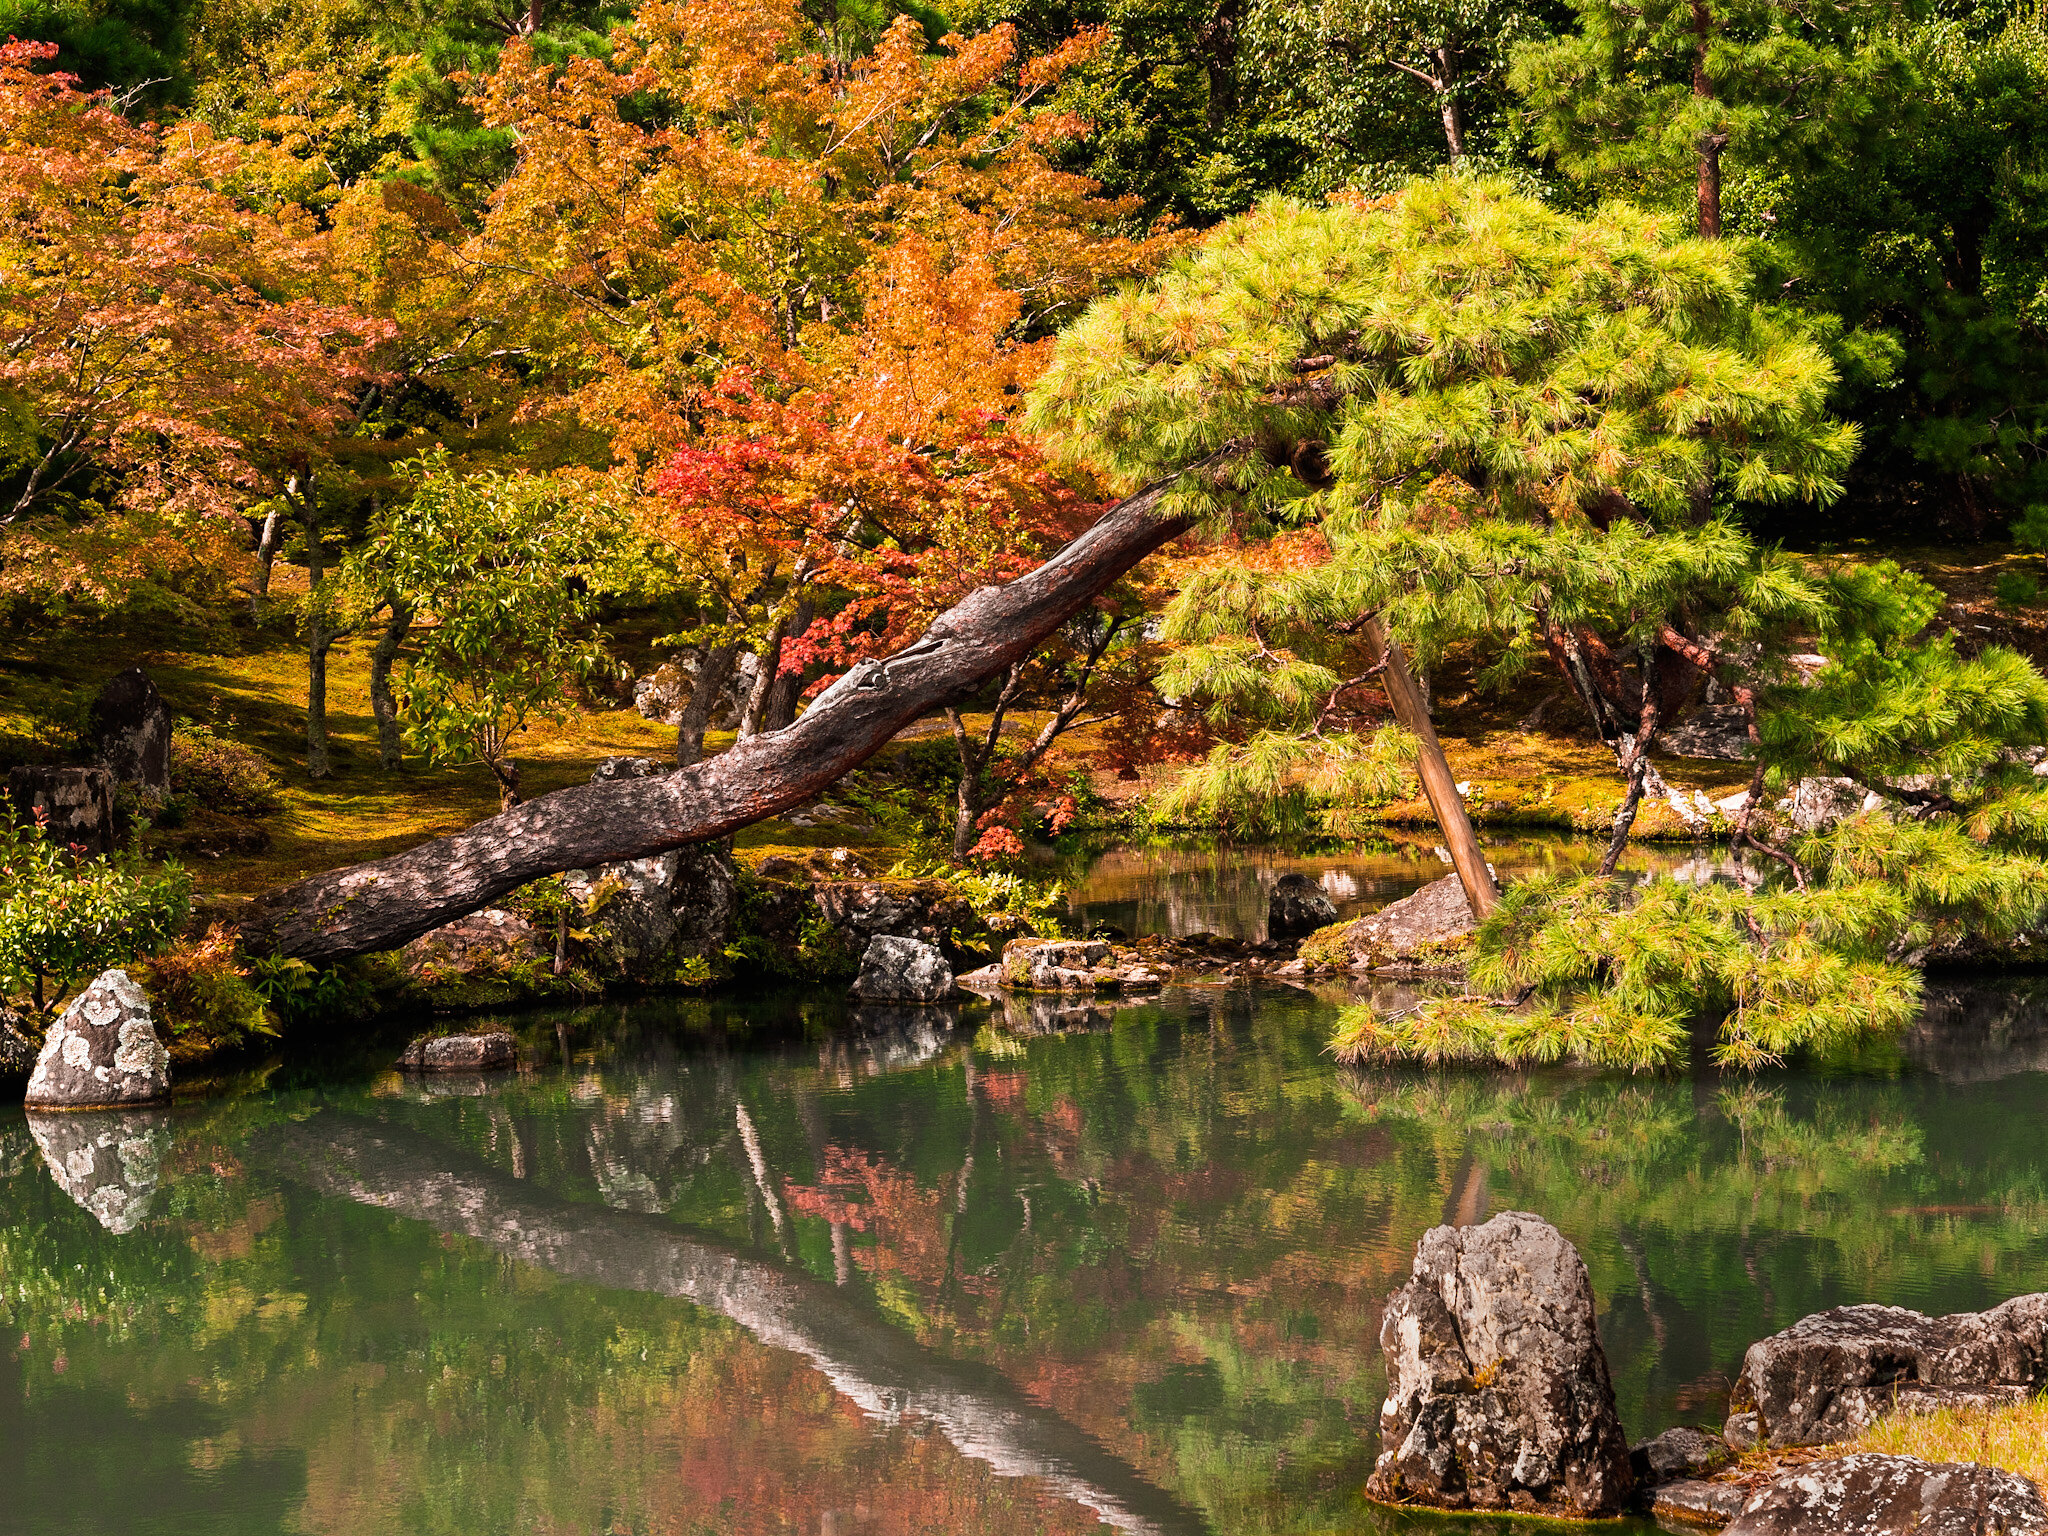 Autumn Colours in Kyoto